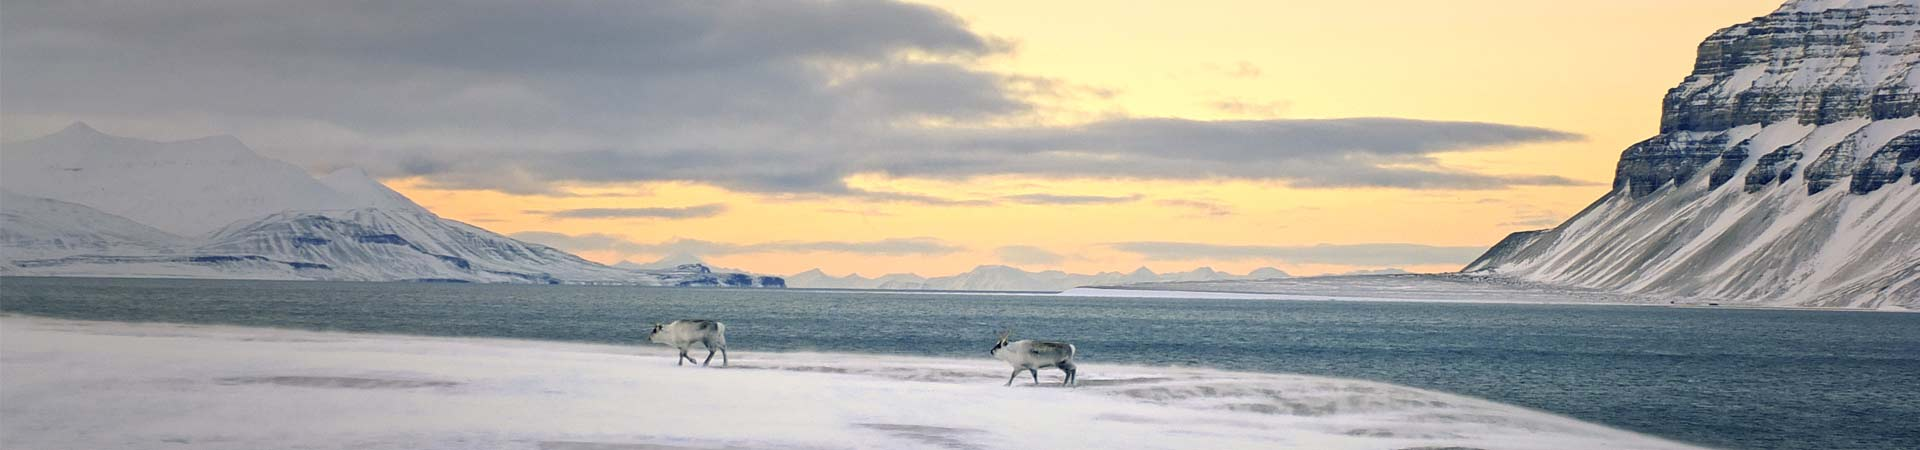 Image showing reindeer on an Arctic fjord